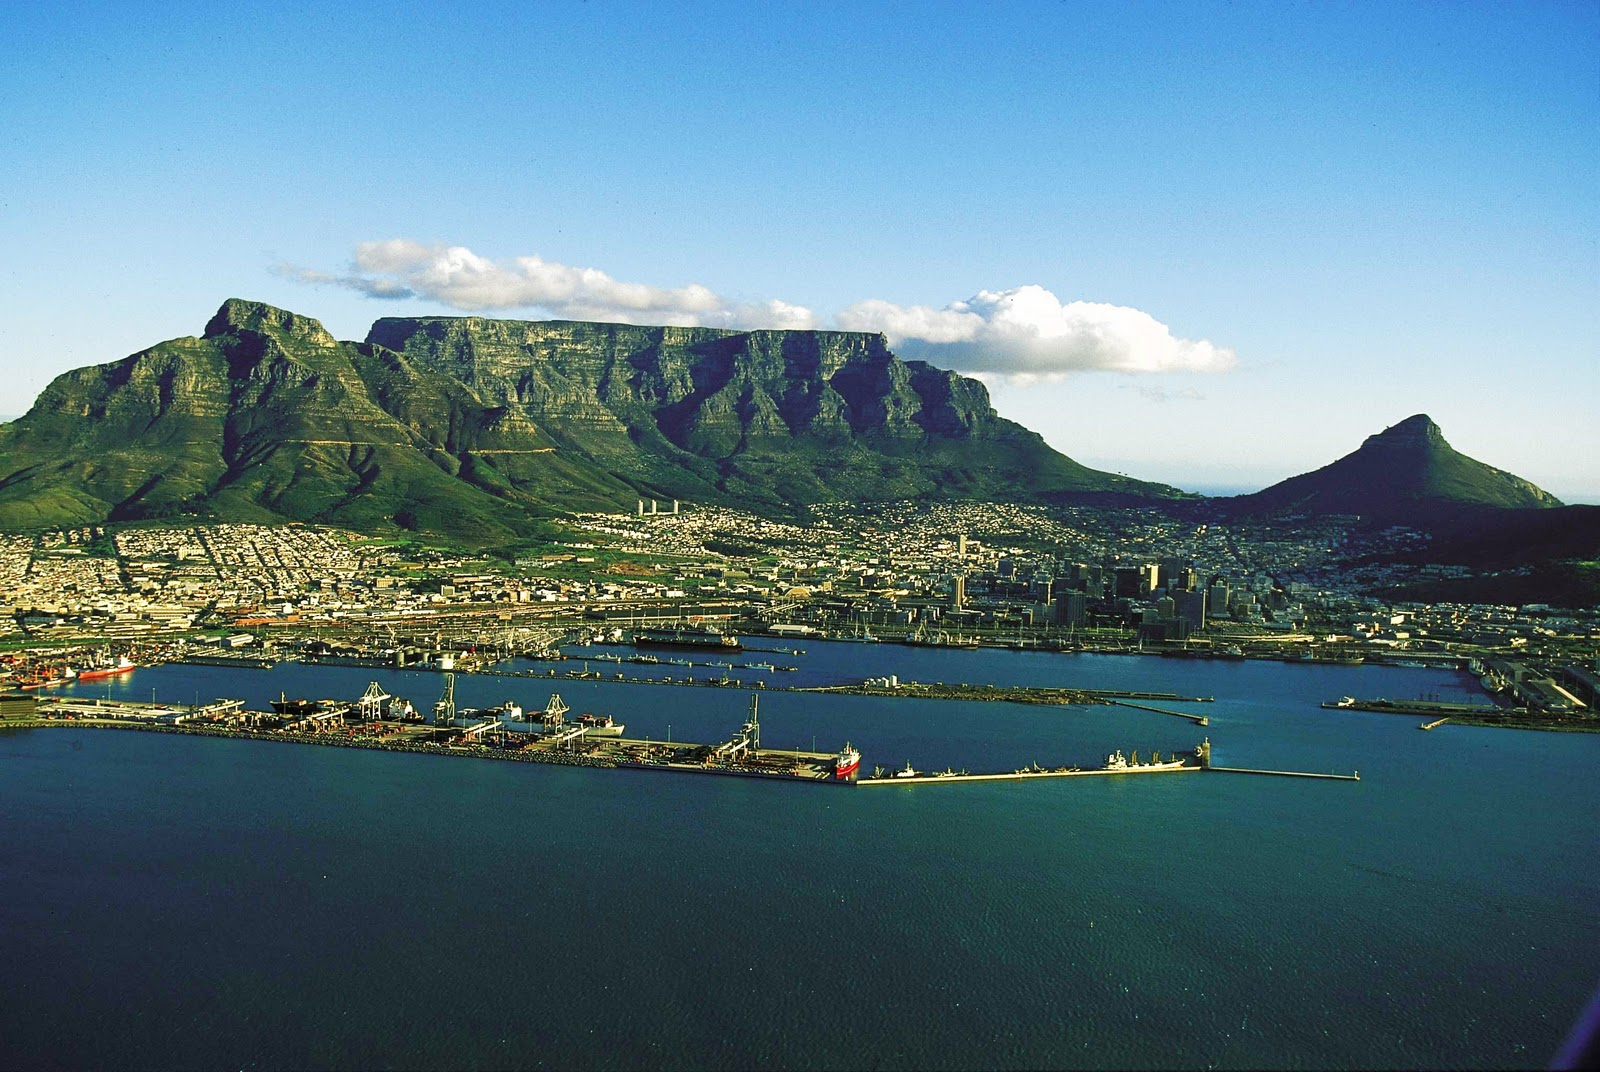 South Africa Tourist Attractions - Tourist Attractions In South Africa Photo